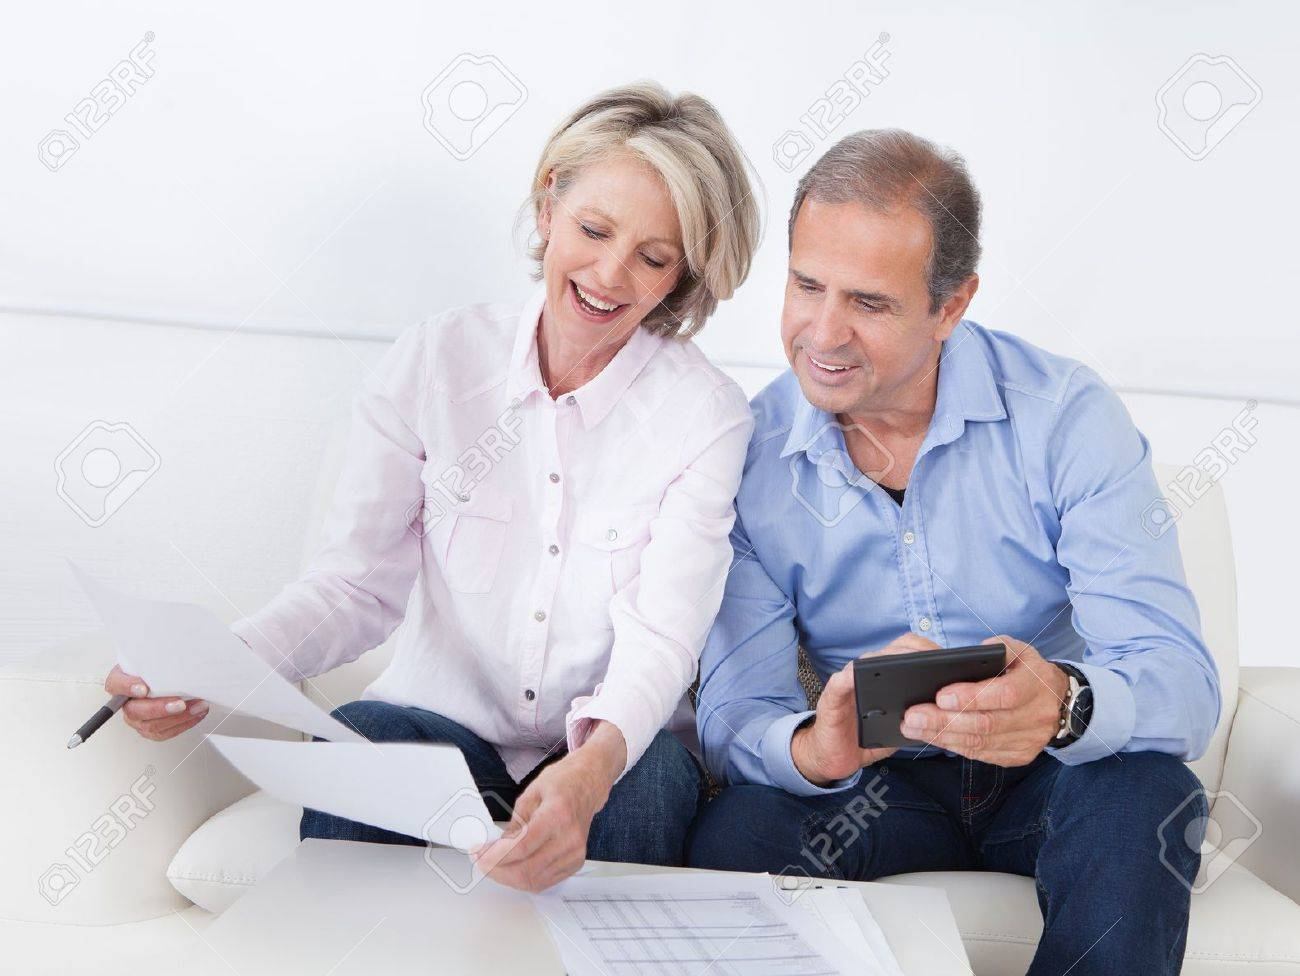 Portrait Of A Couple Sitting On Couch Enjoying Success Stock Photo - 21234769